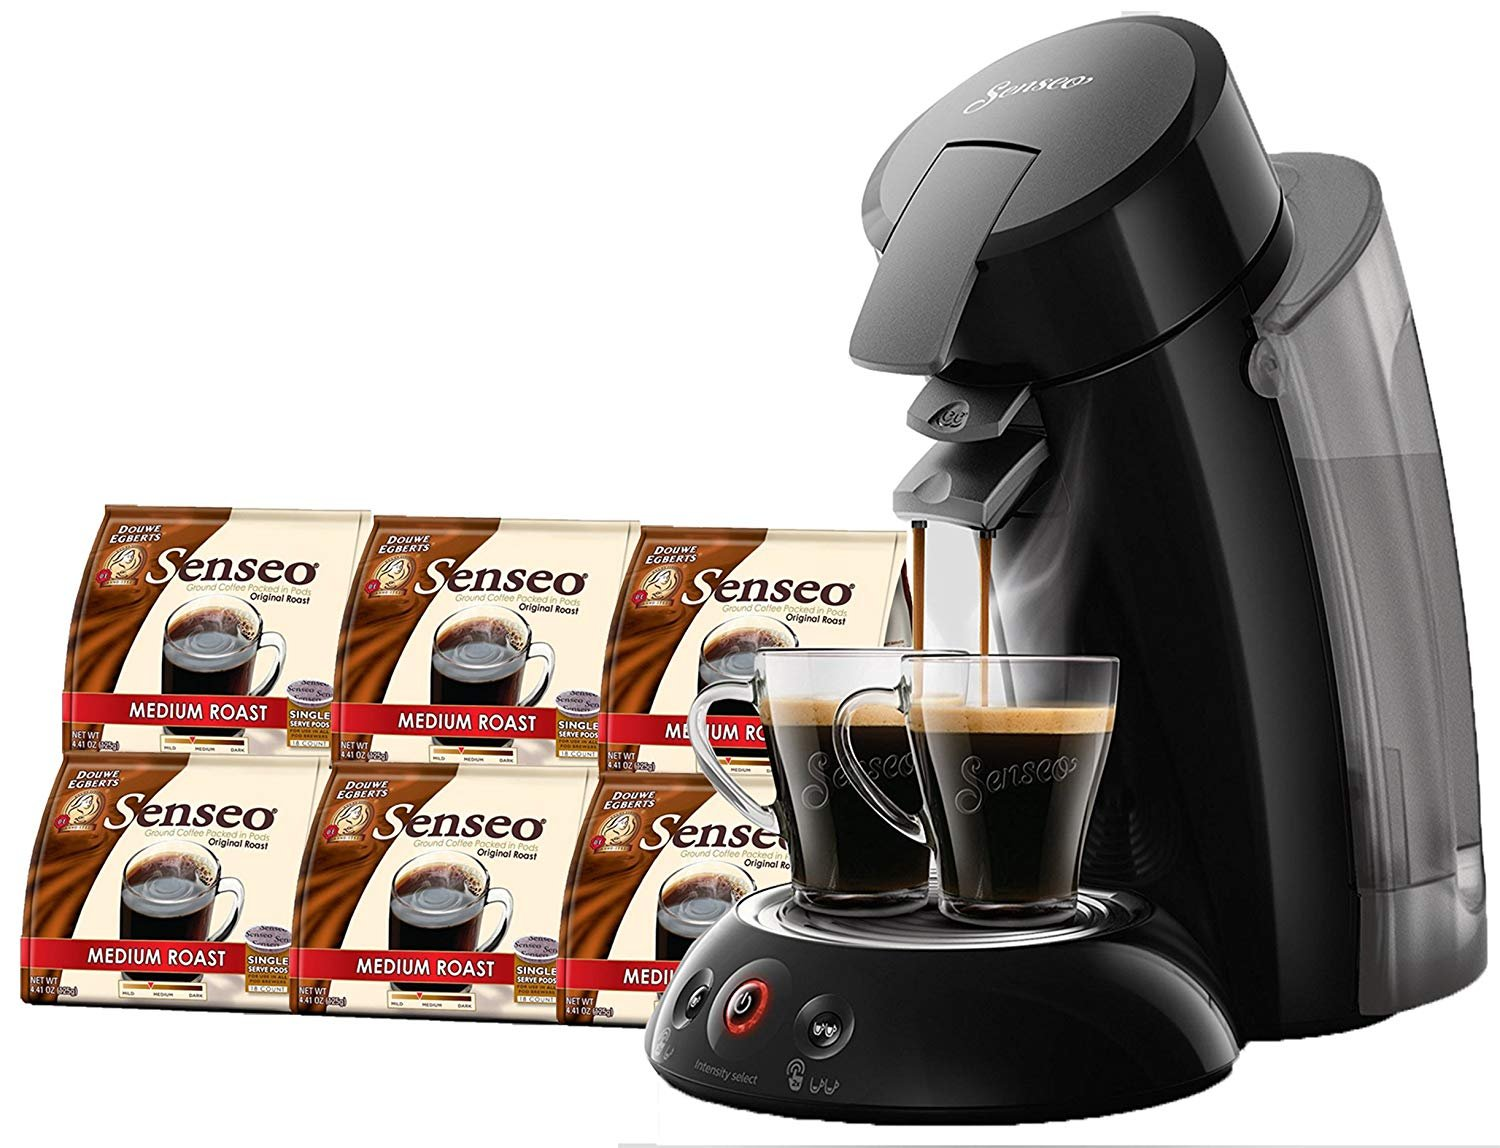 SENSEO Original XL Coffee Pod Machine, Coffee Maker, Coffee Machine, Espresso Machine for Senseo Coffee Pods, 2018 Edition, Black 20075020051848